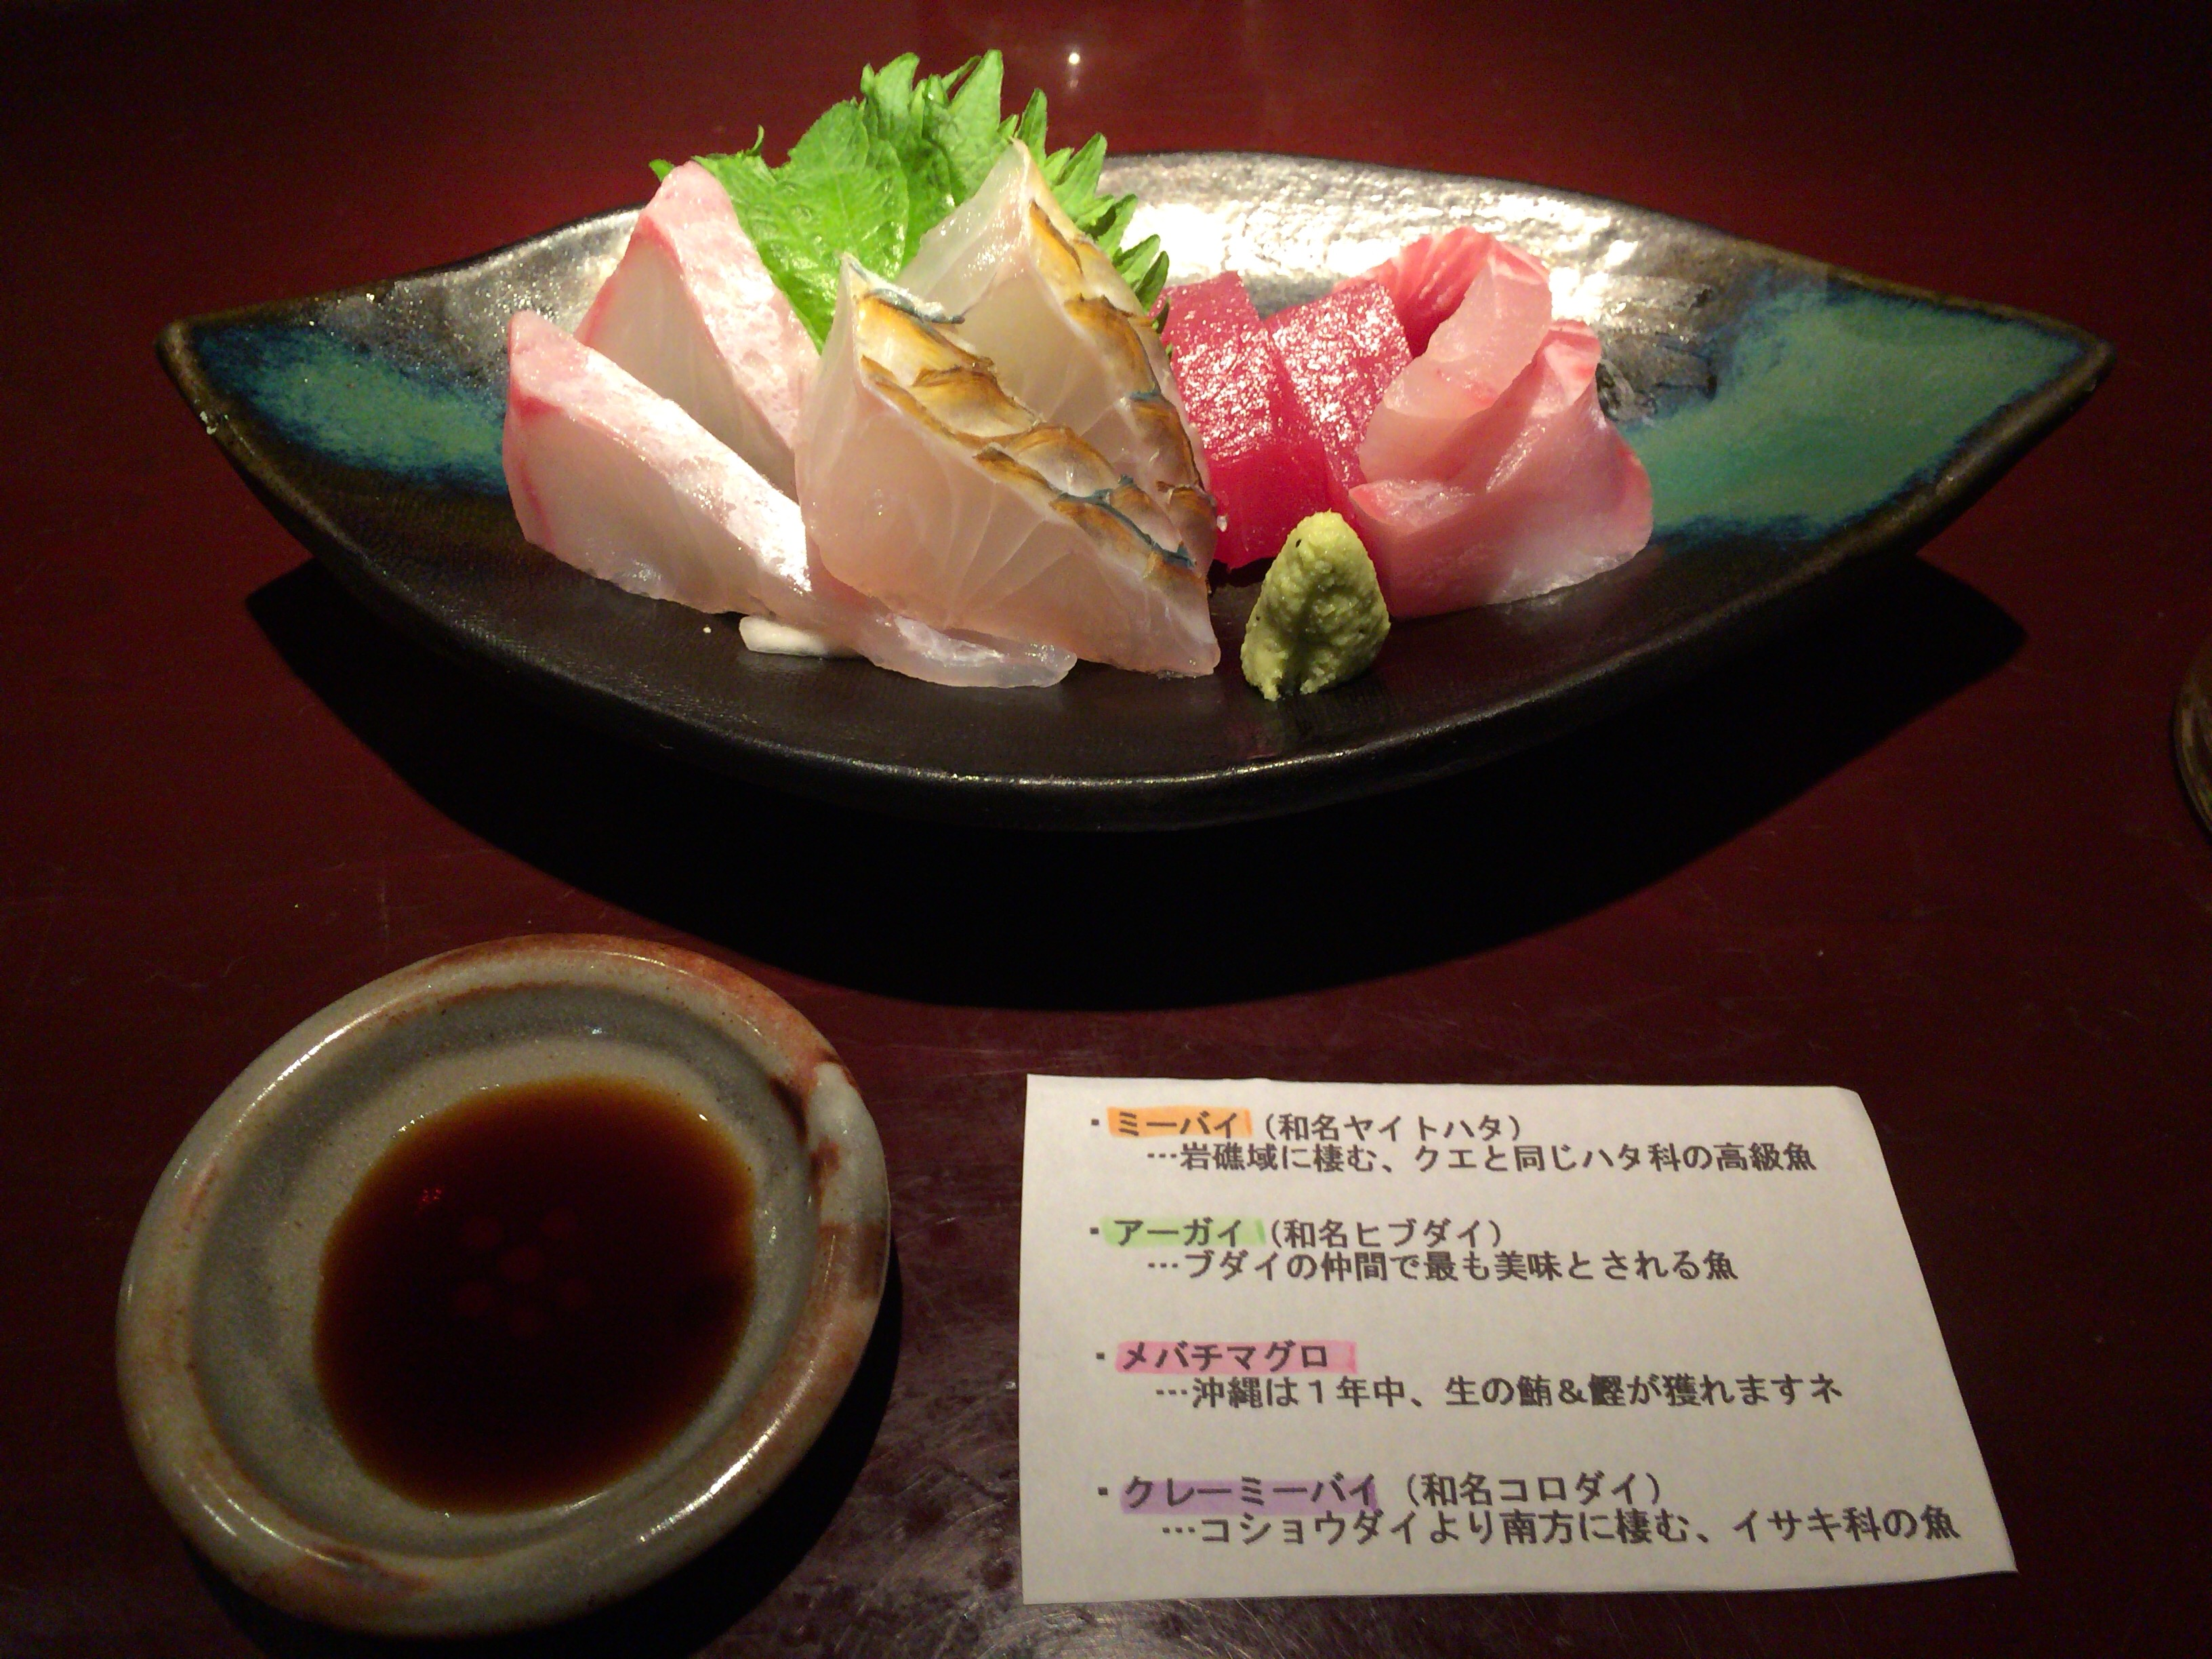 Assorted Sashimi (Sliced Raw Fish)